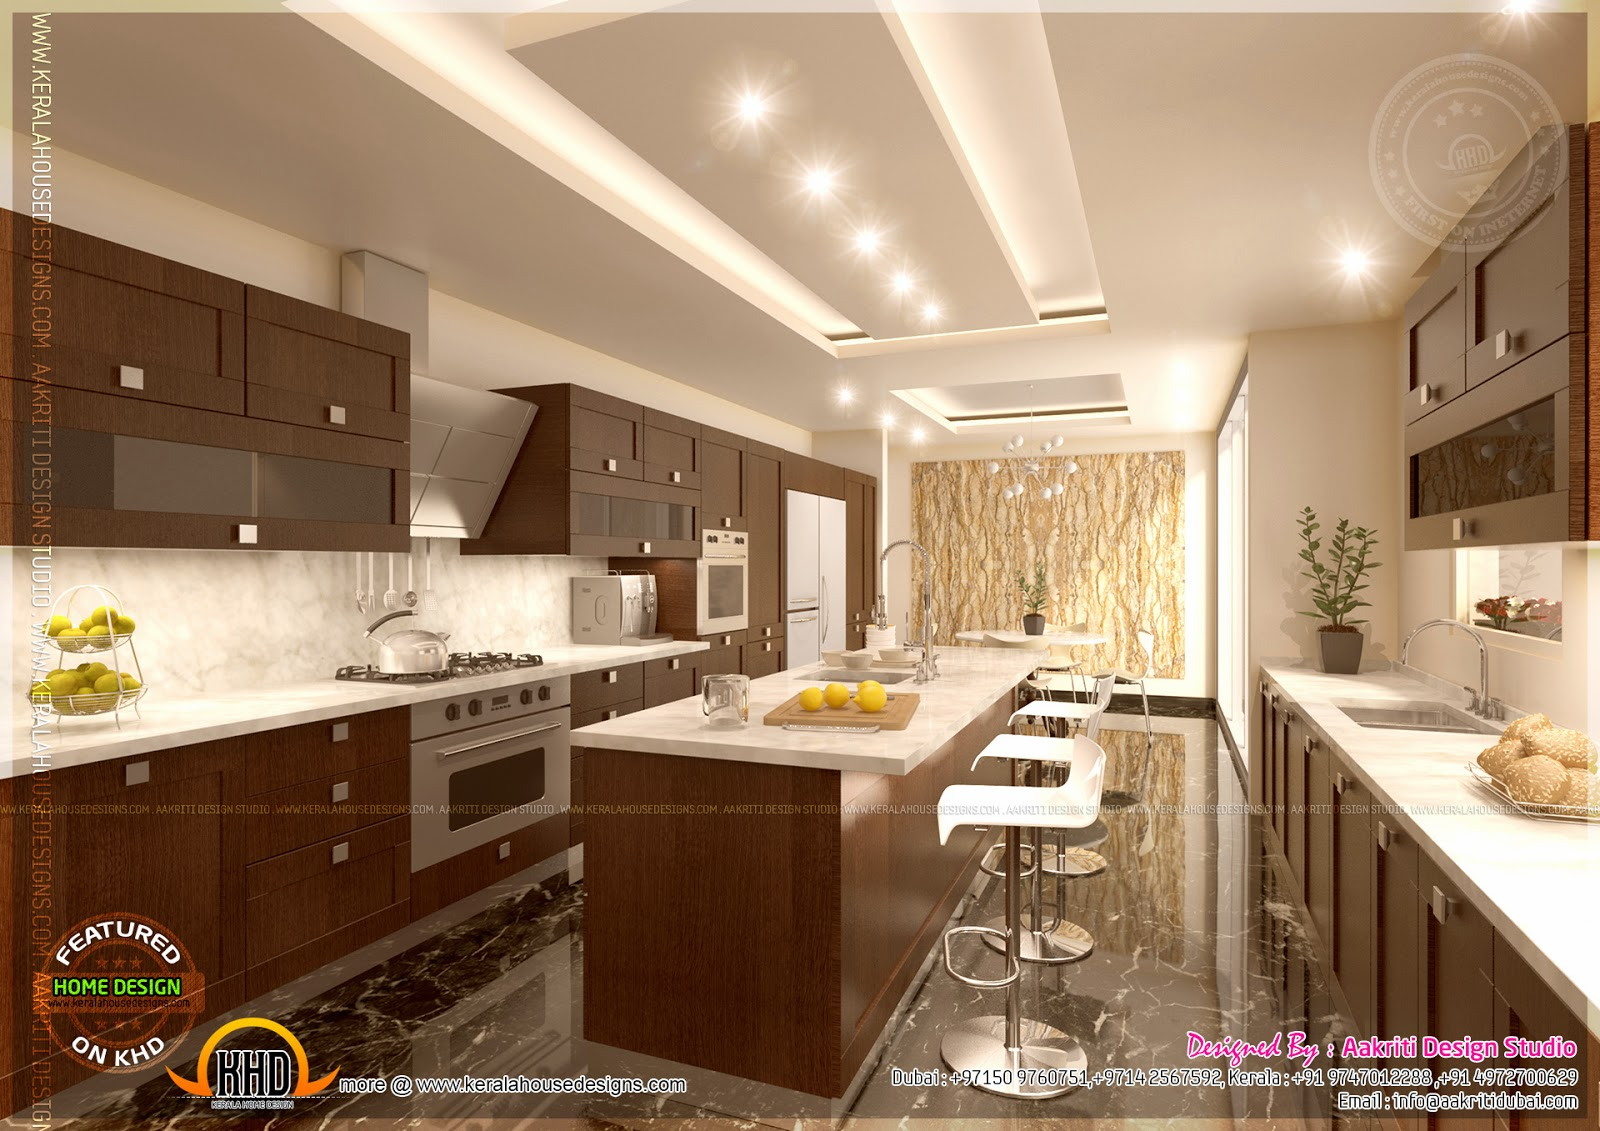 Kitchen designs by aakriti design studio kerala home for Kichan dizain